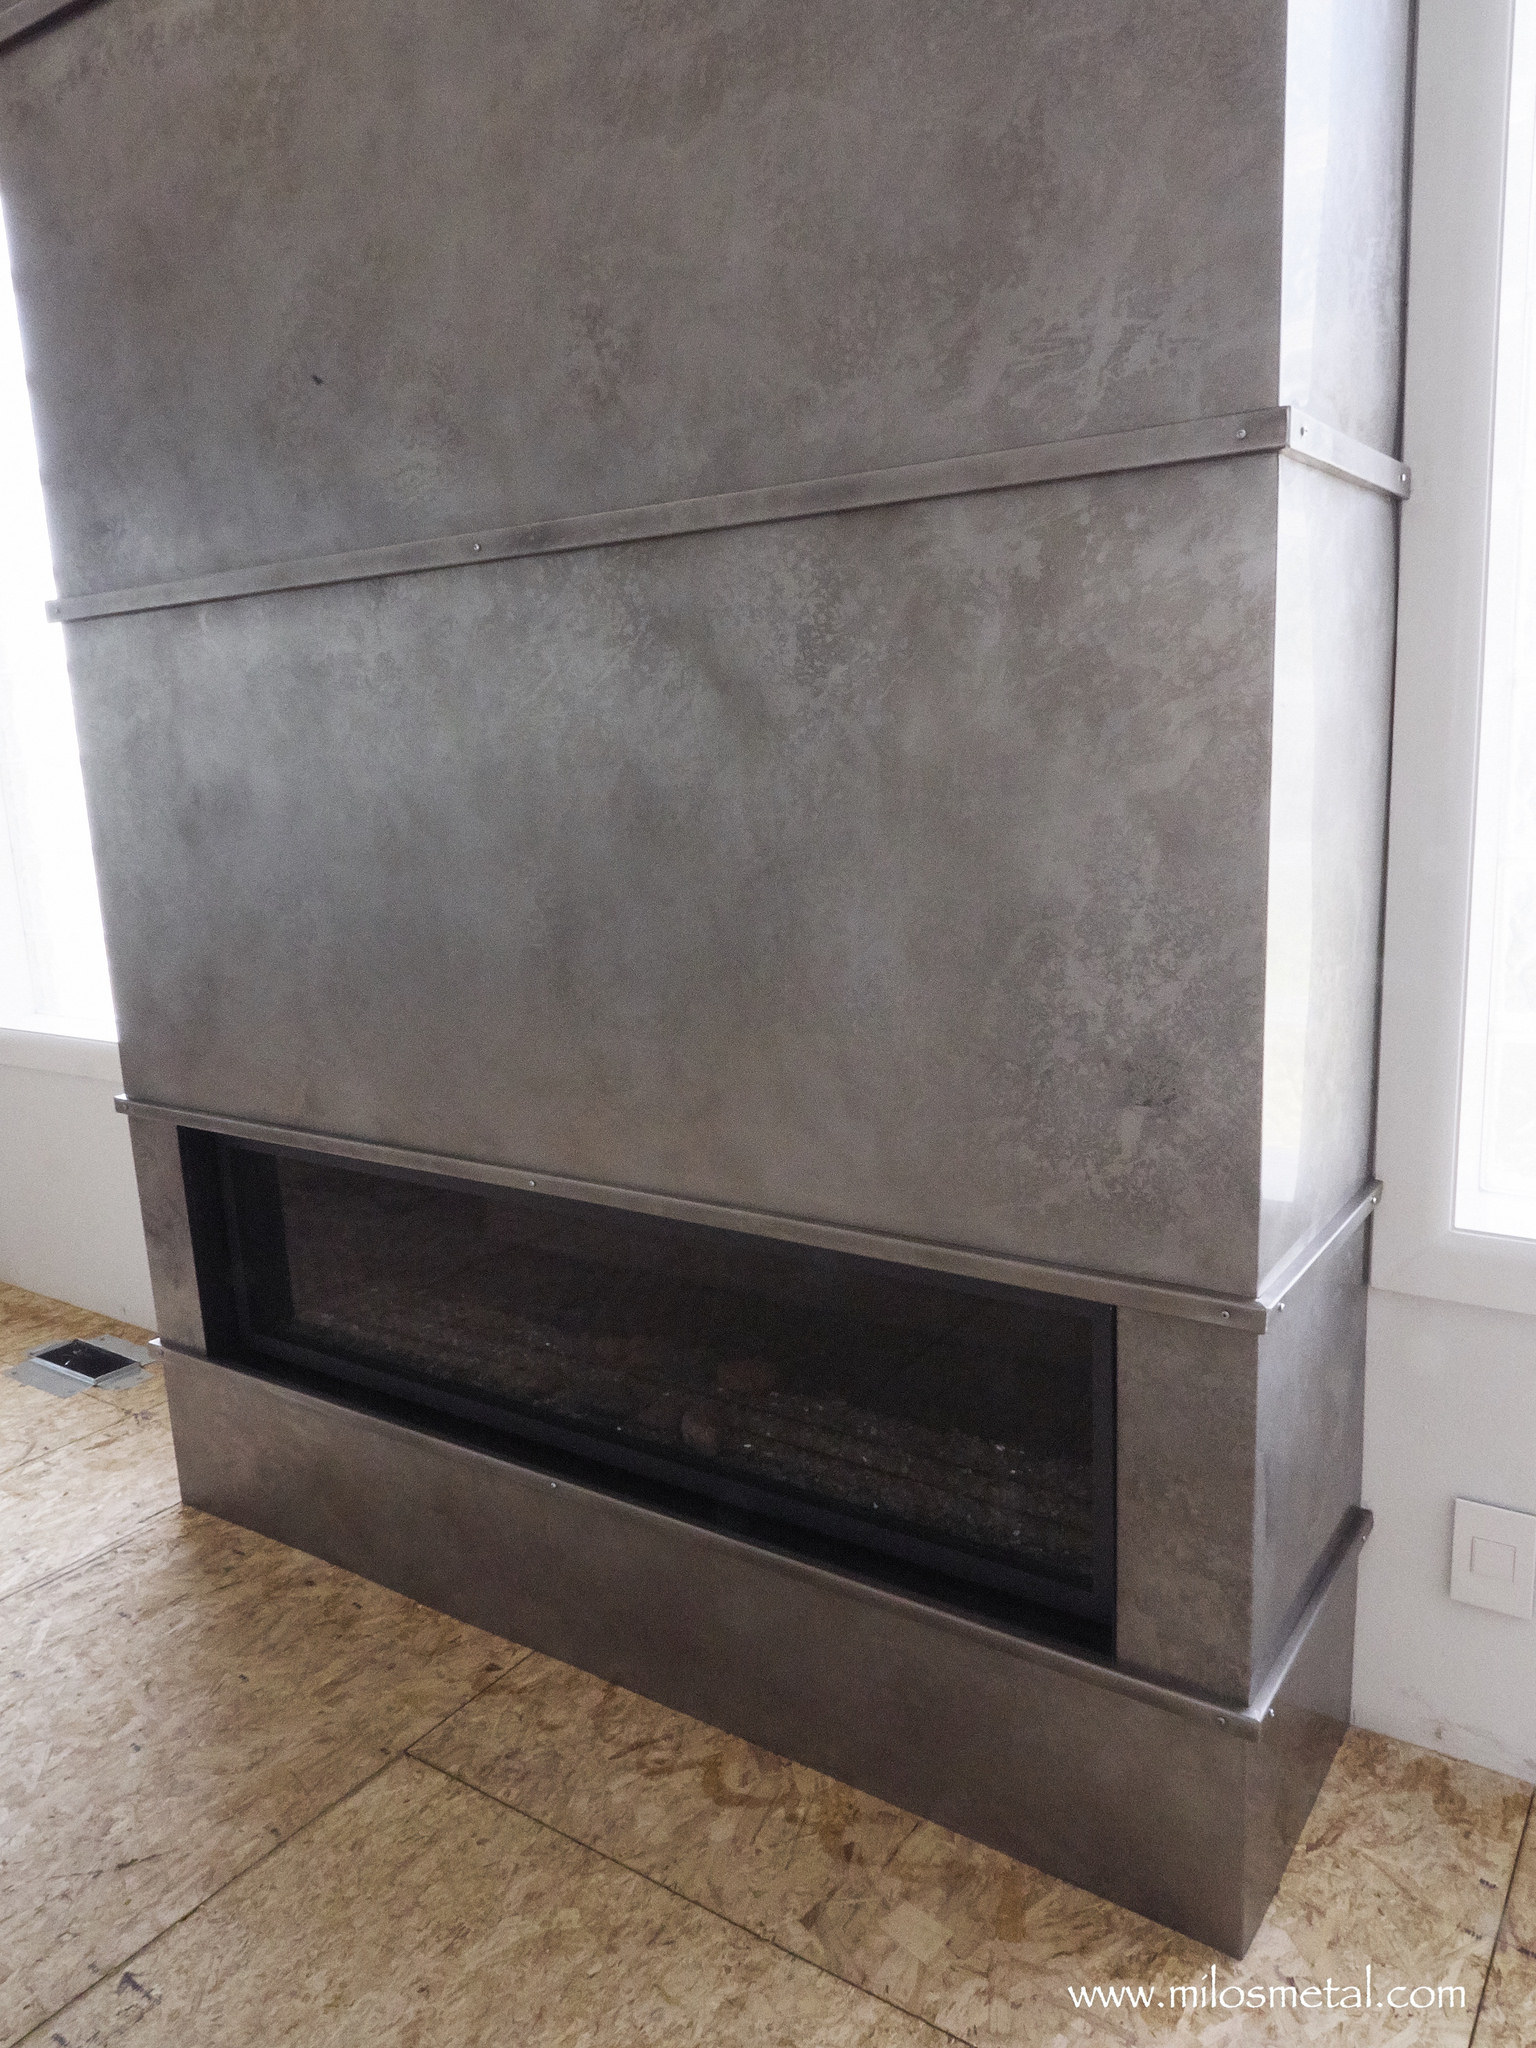 Stainless Steel Fireplace Fireplace Volcanic Stainless Milo 39s Art Metal